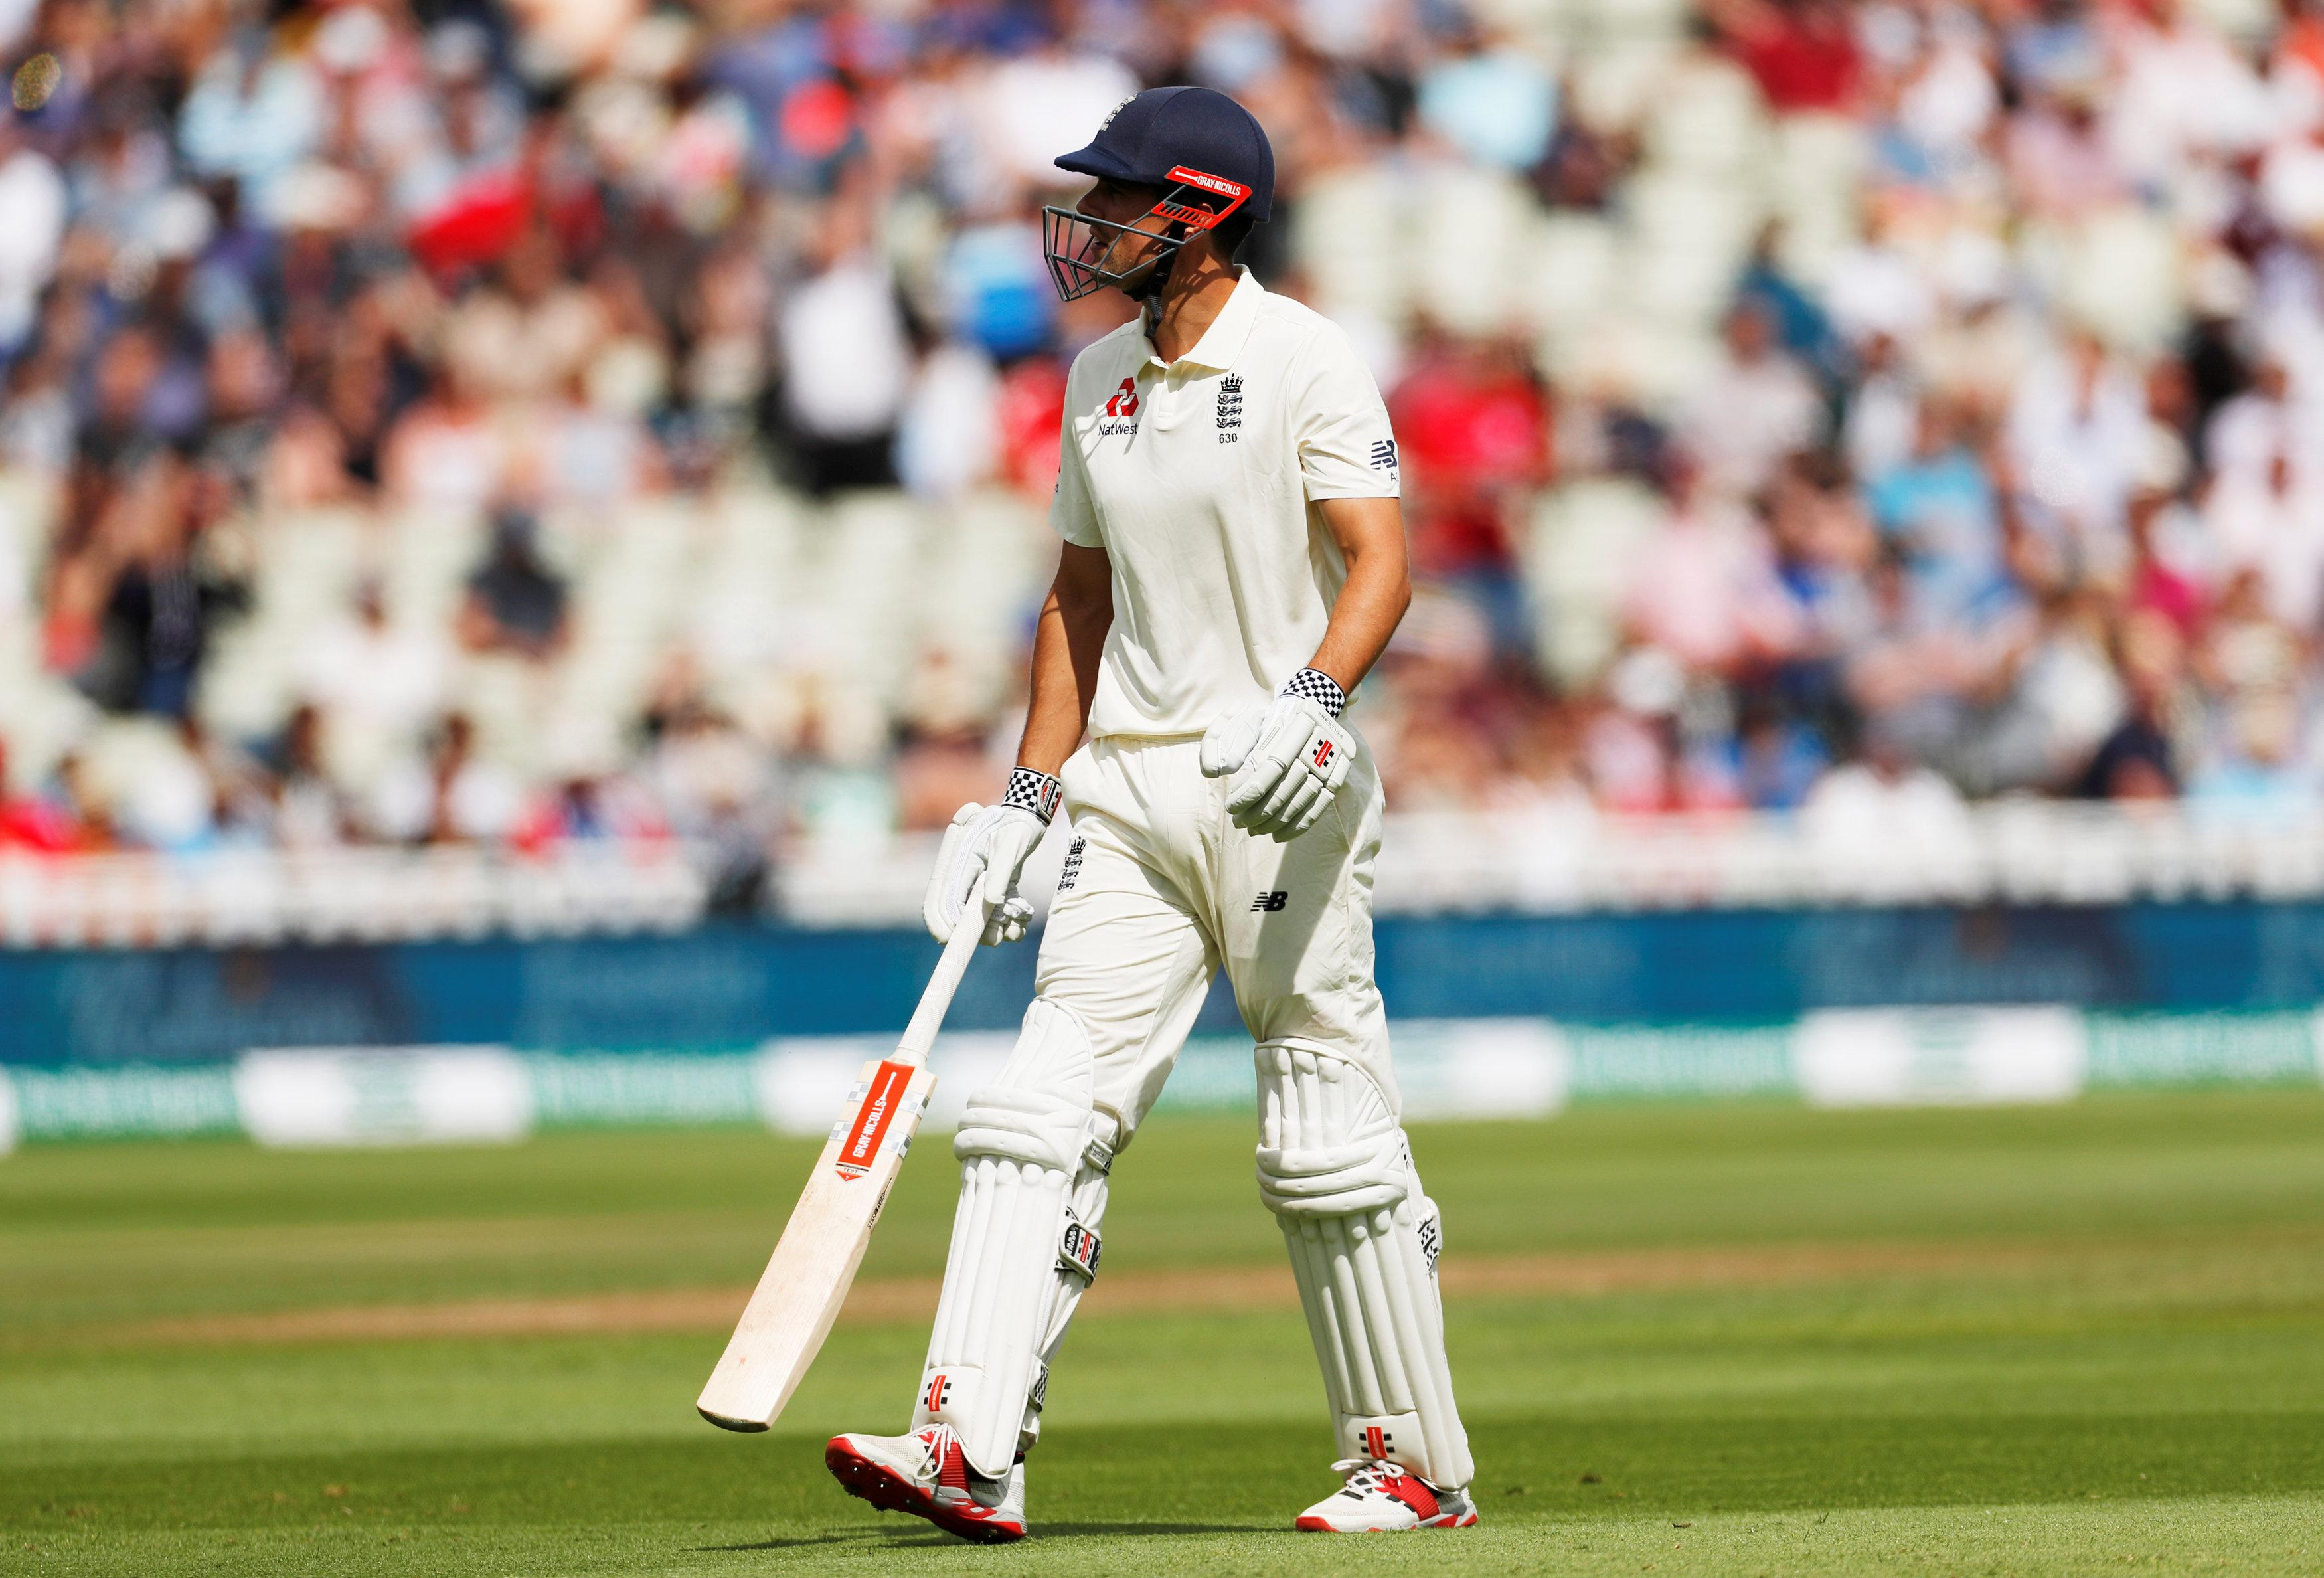 Alastair Cook fell cheaply on the morning of day four as England slid to defeat